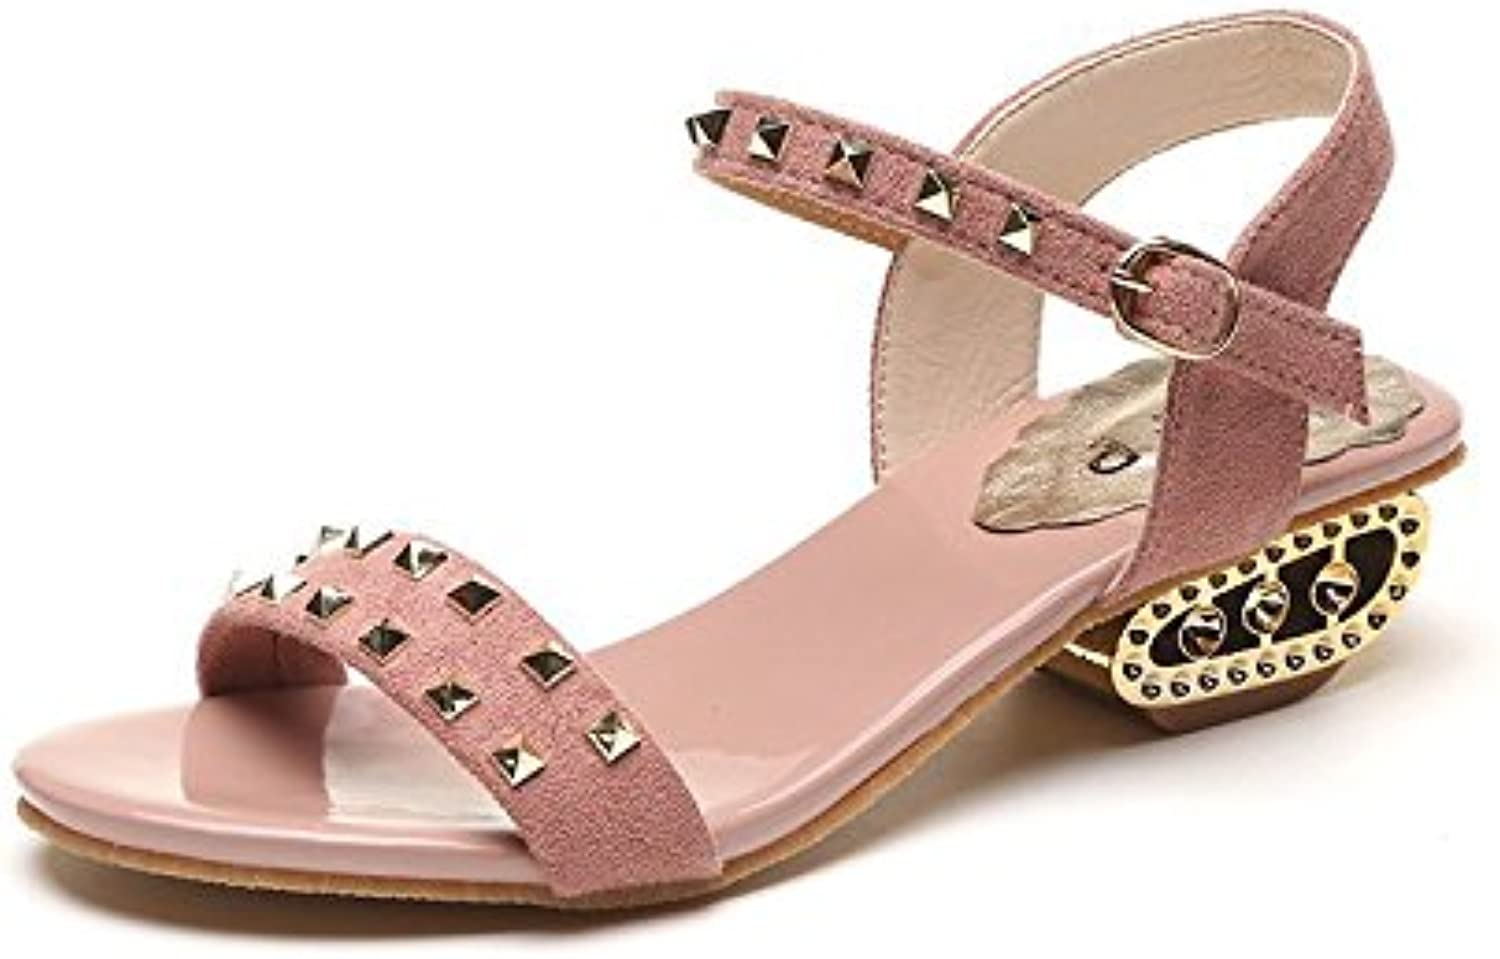 XKNSLX Casual New Sandals Square Root Toes Women's Type Buckles Sequins Fashionable Rome shoes